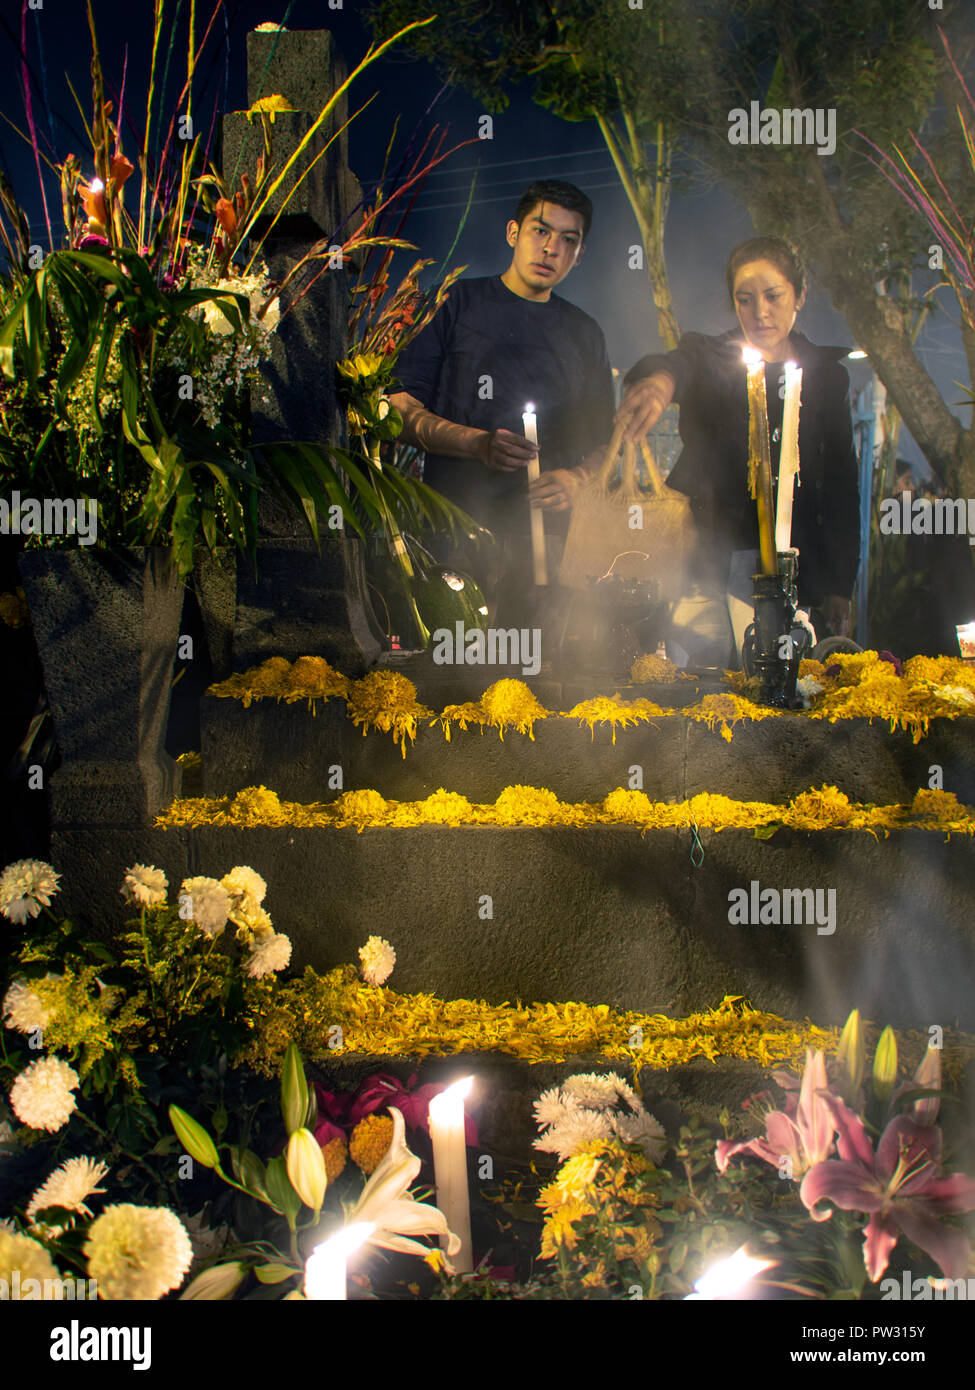 Men Remembering Loved Ones in the Historic Mixquic Cemetery in CDMX on the Day of the Dead - Stock Image